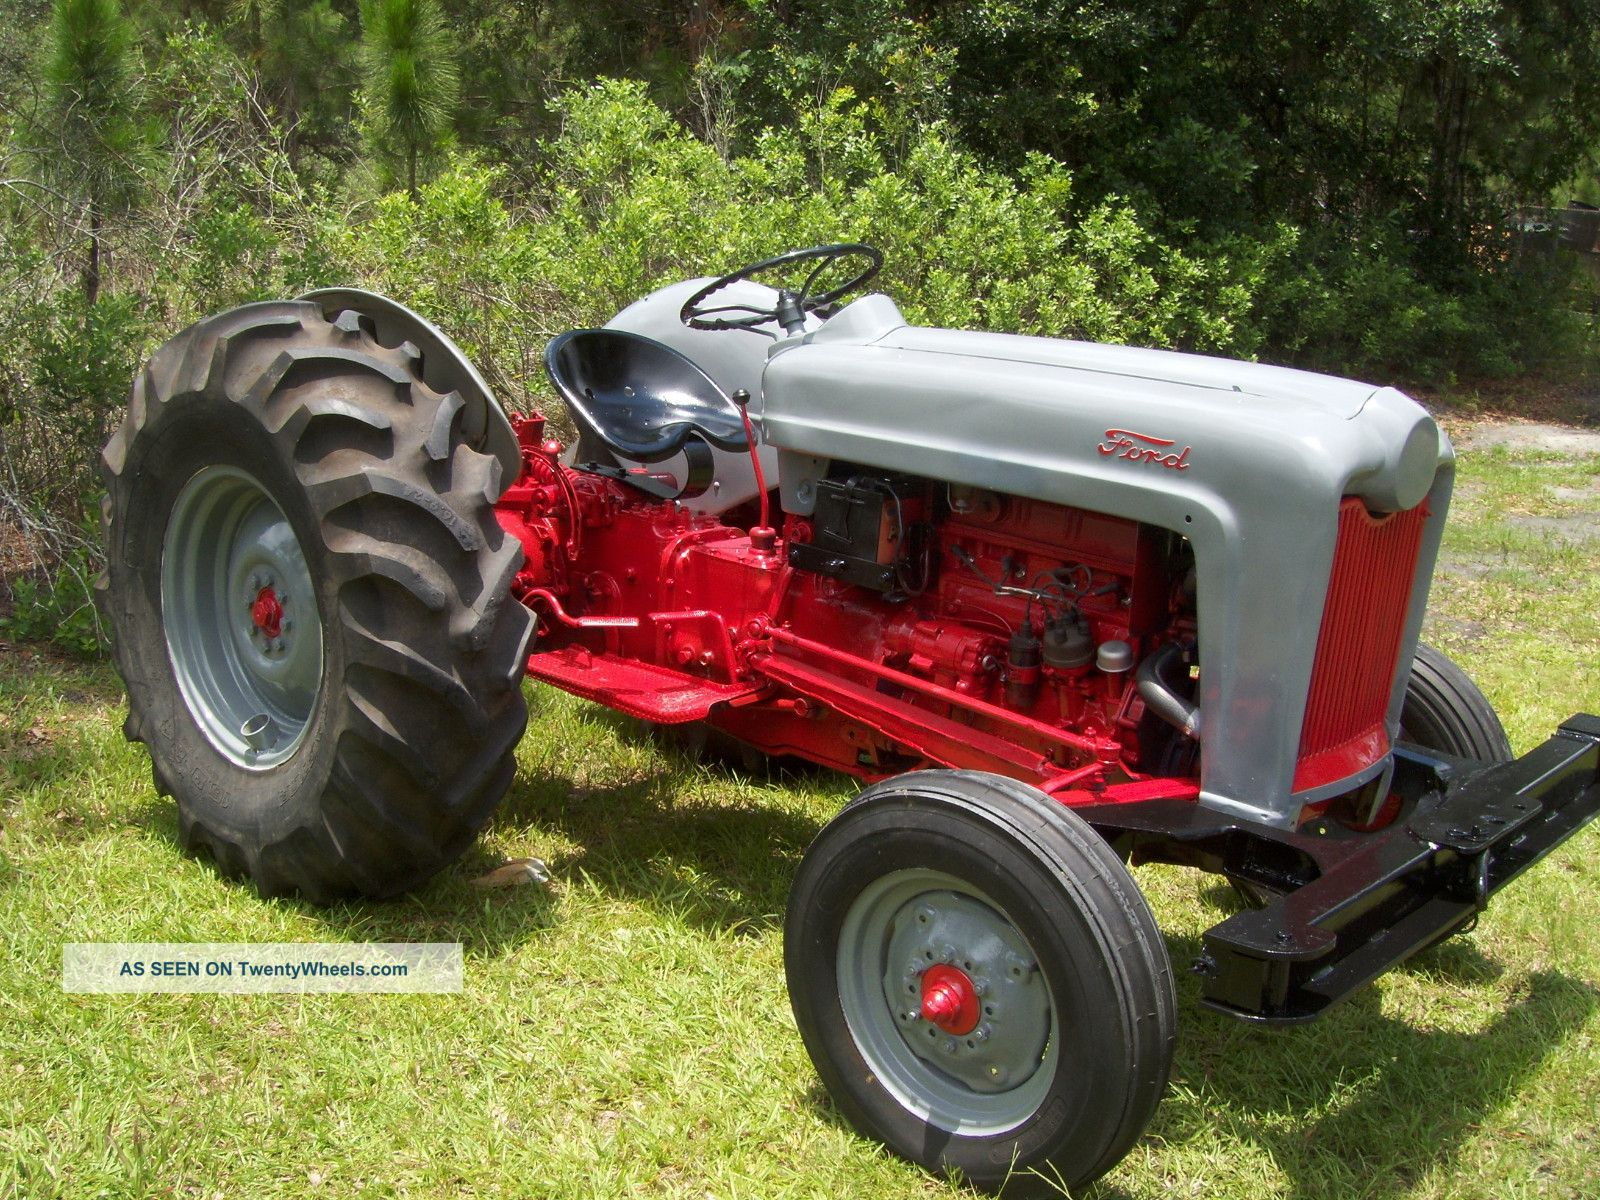 Ford Jubilee Parts : Antique ford jubilee naa specs tractor